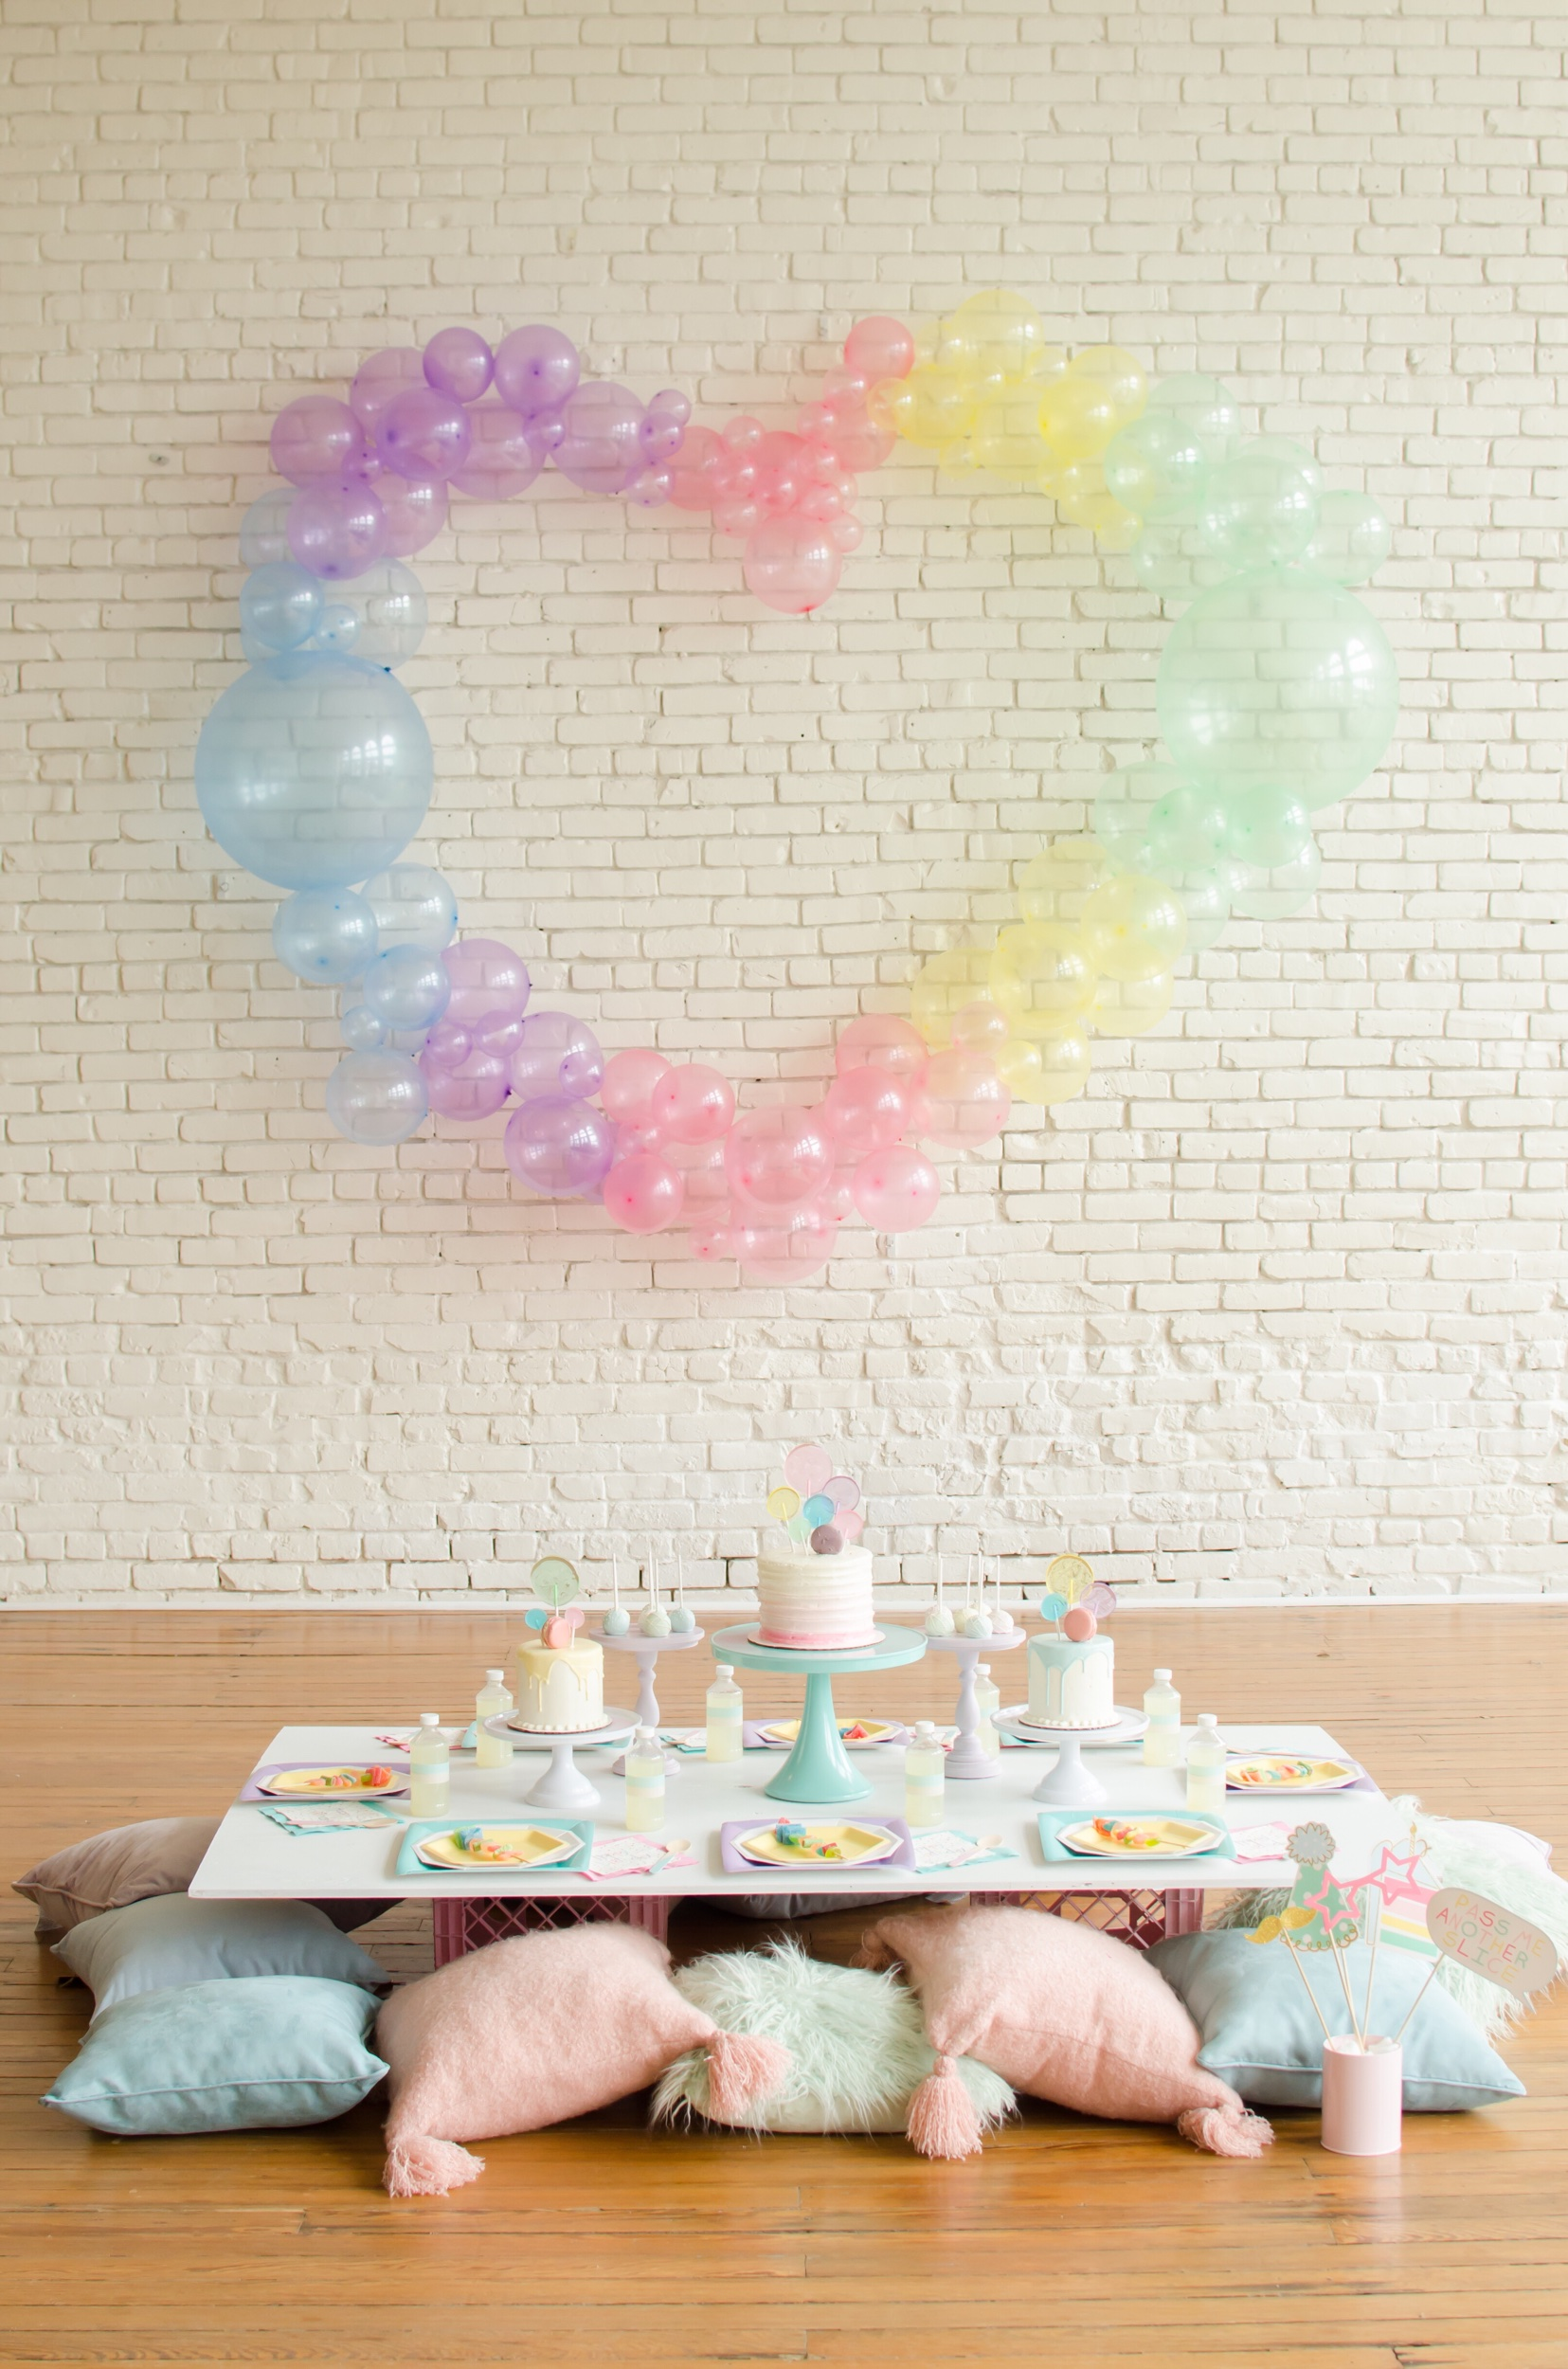 Balloon themed birthday party ideas from Mint Event Design